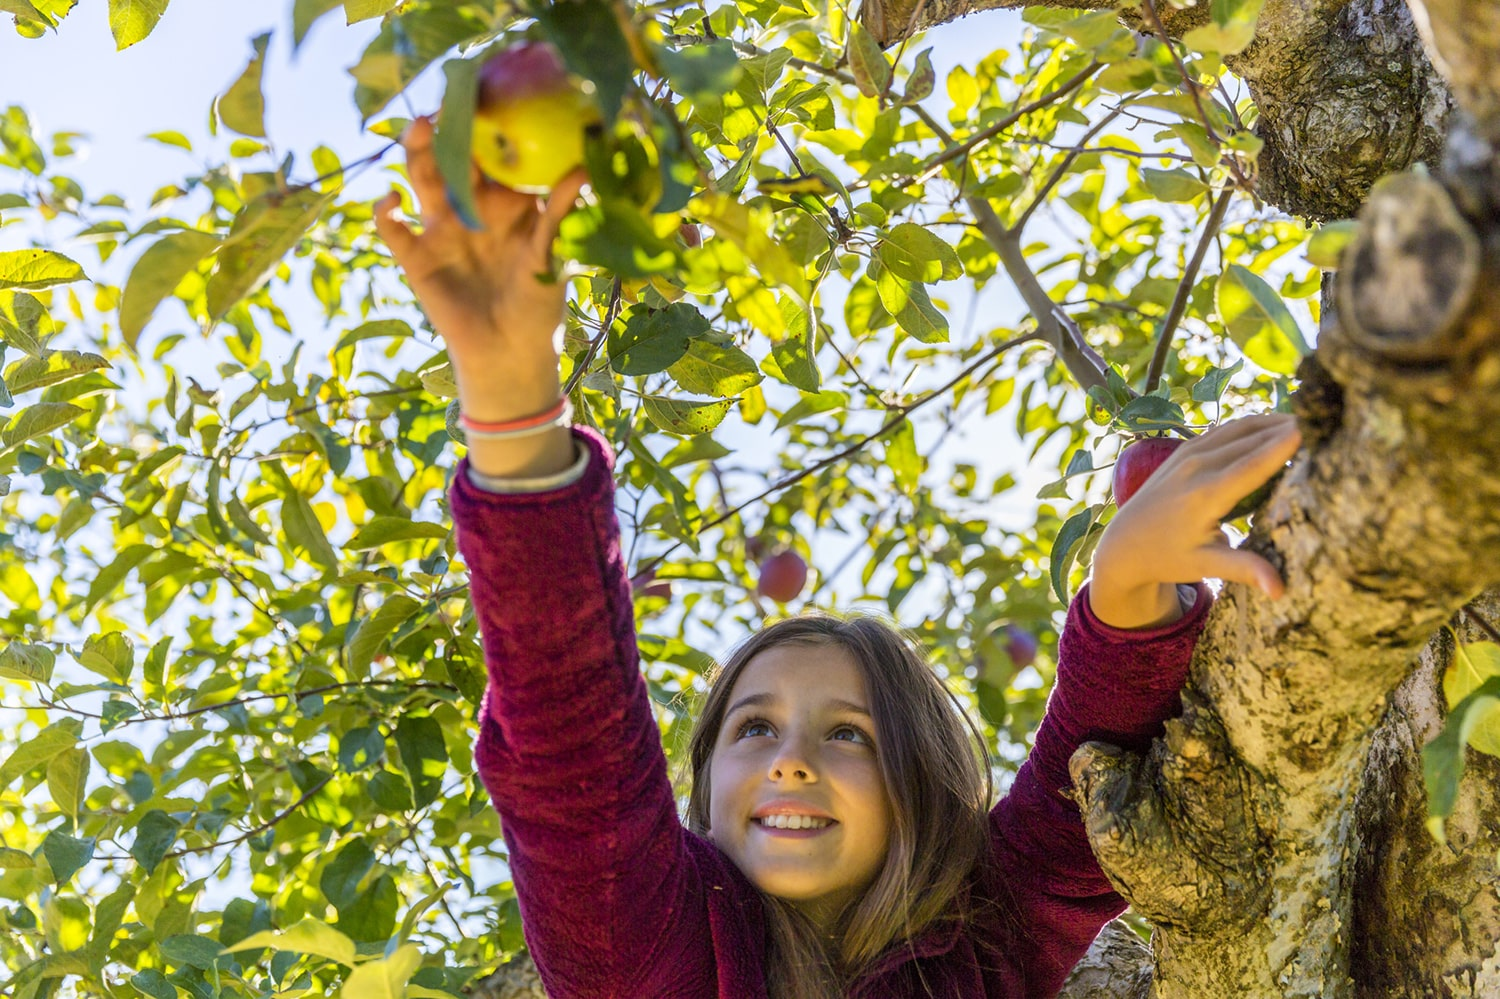 young girl picking an apple off of an apple tree